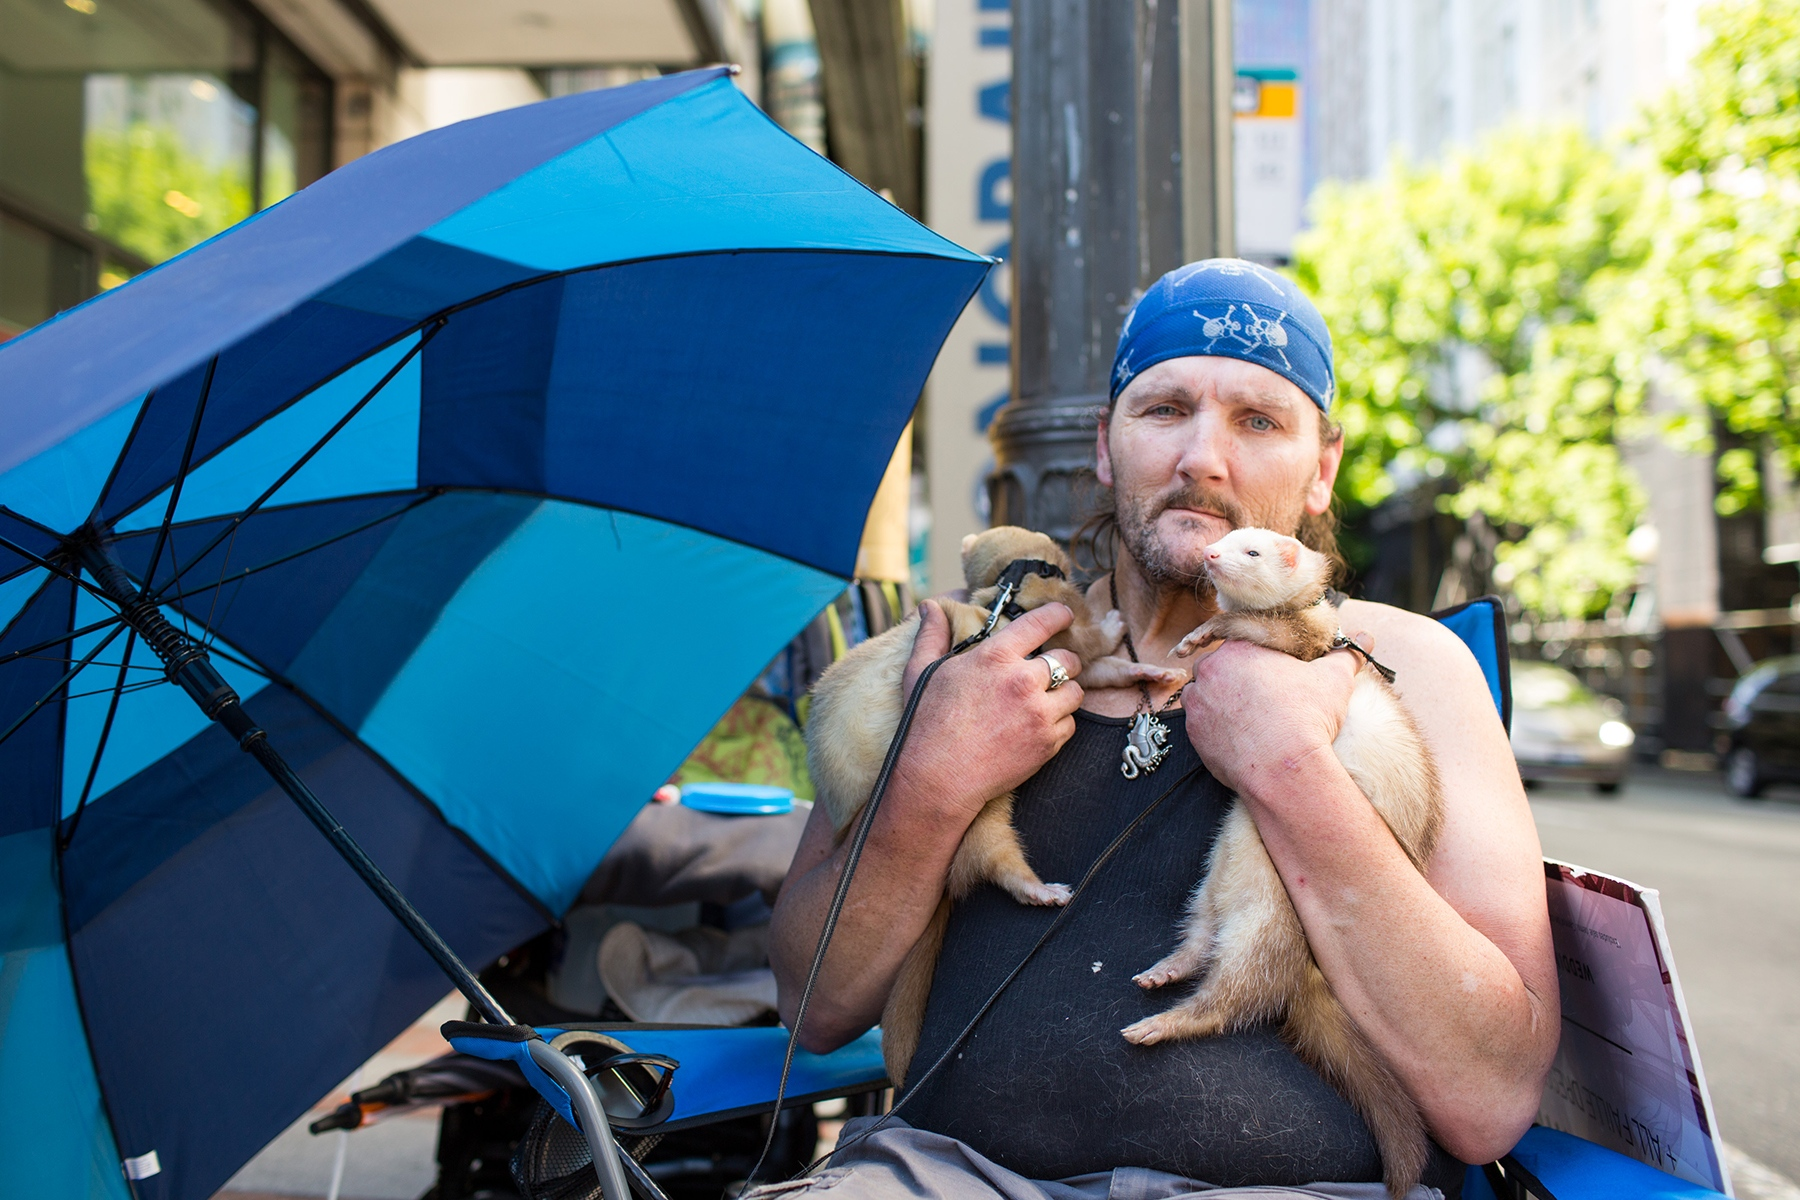 Richard Dyer, 52, with his pet ferrets Ricky and Tiny in Seattle, Washington. 'Homeless people on their pets' for the Guardian